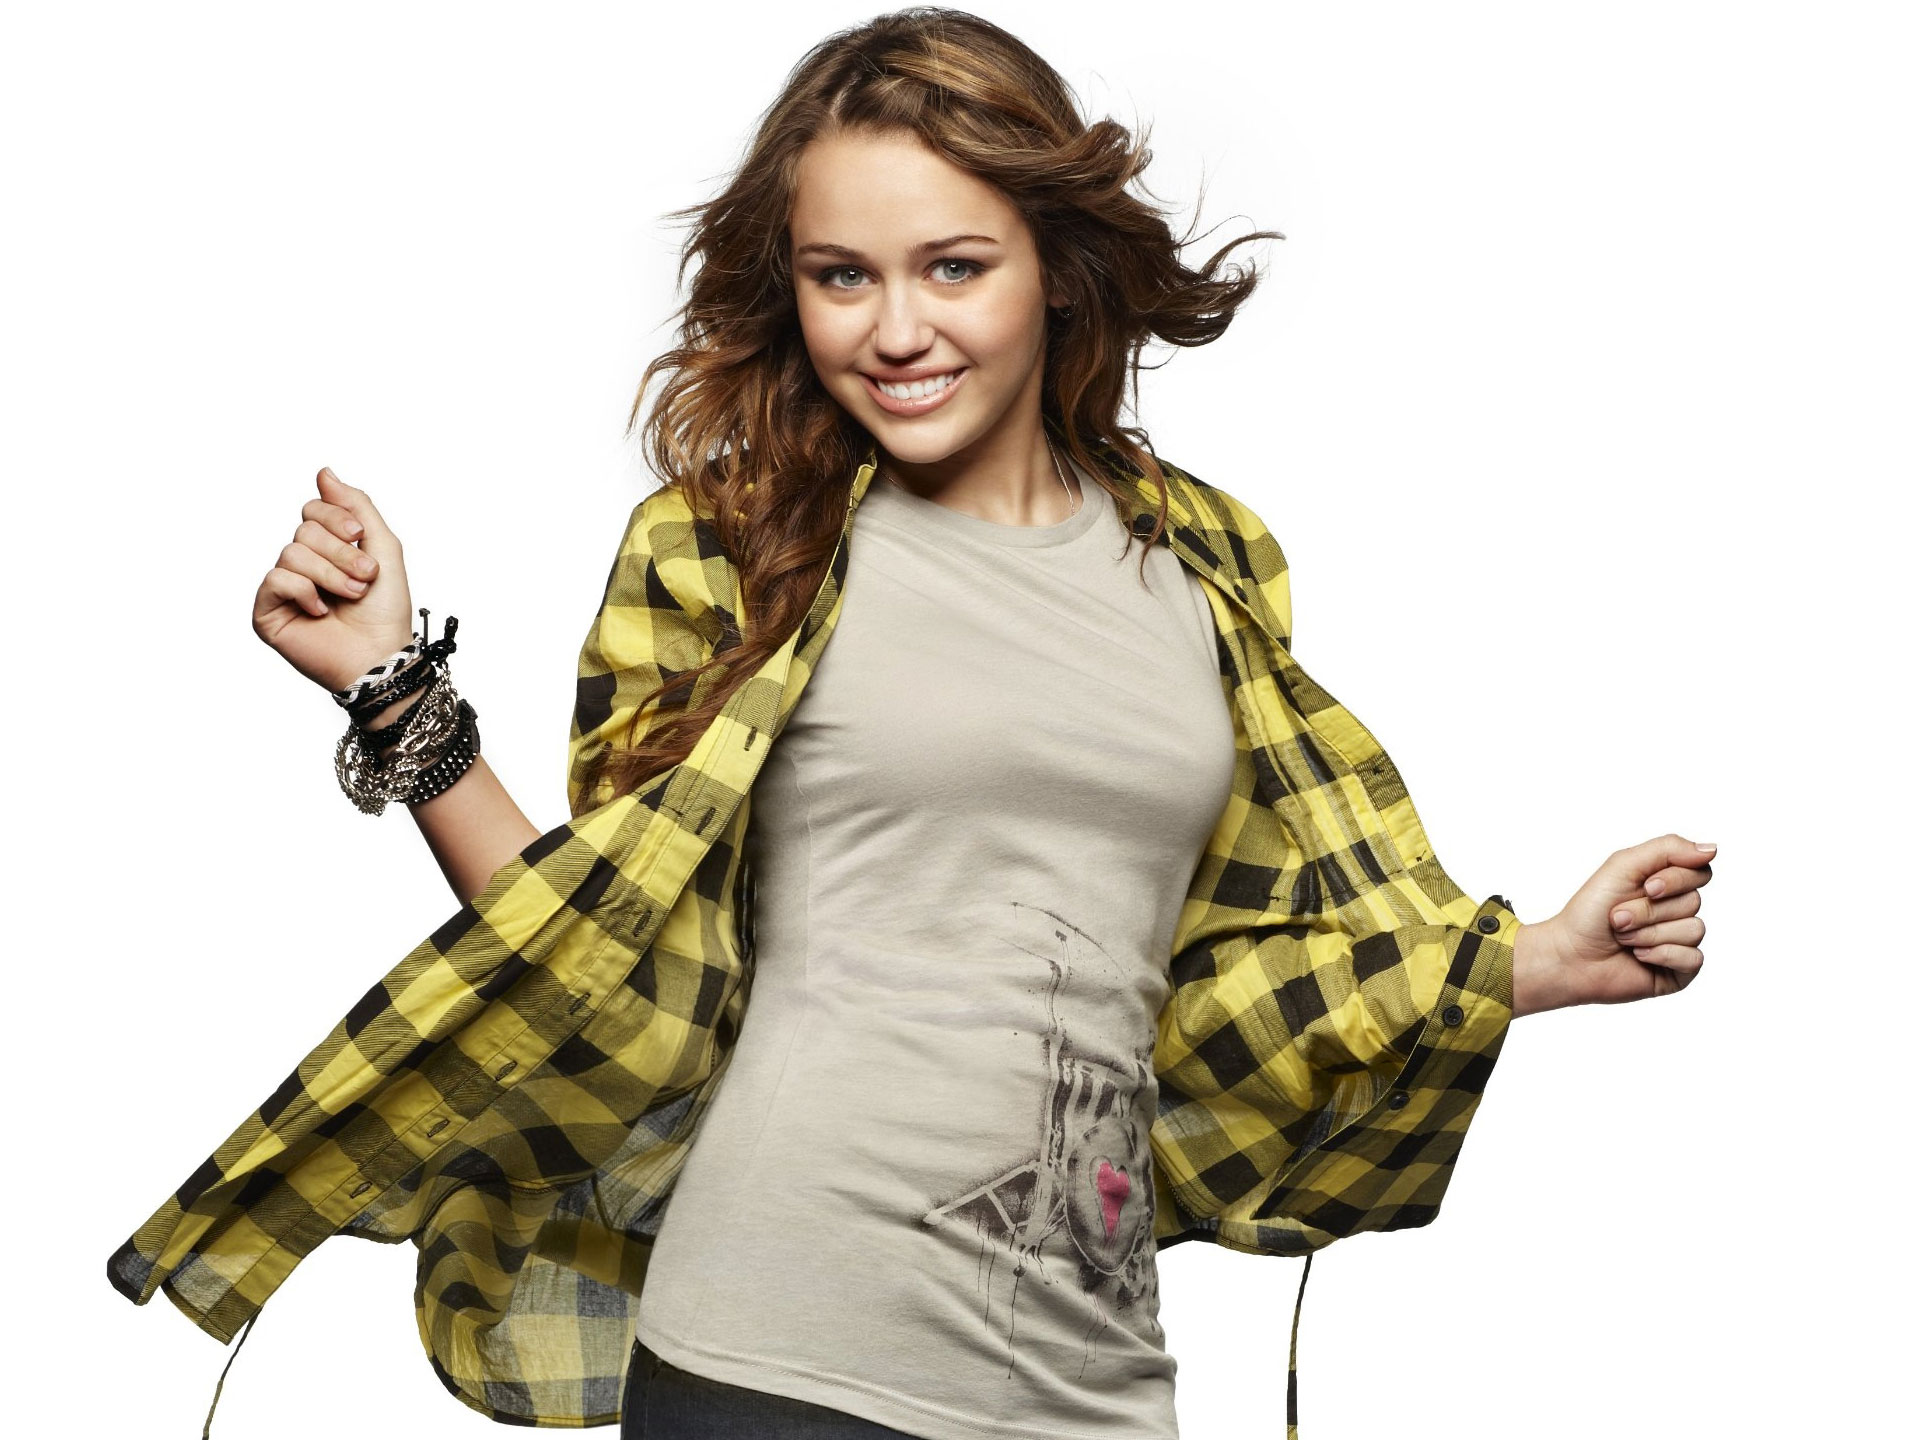 Miley Ray Cyrus 757.82 Kb